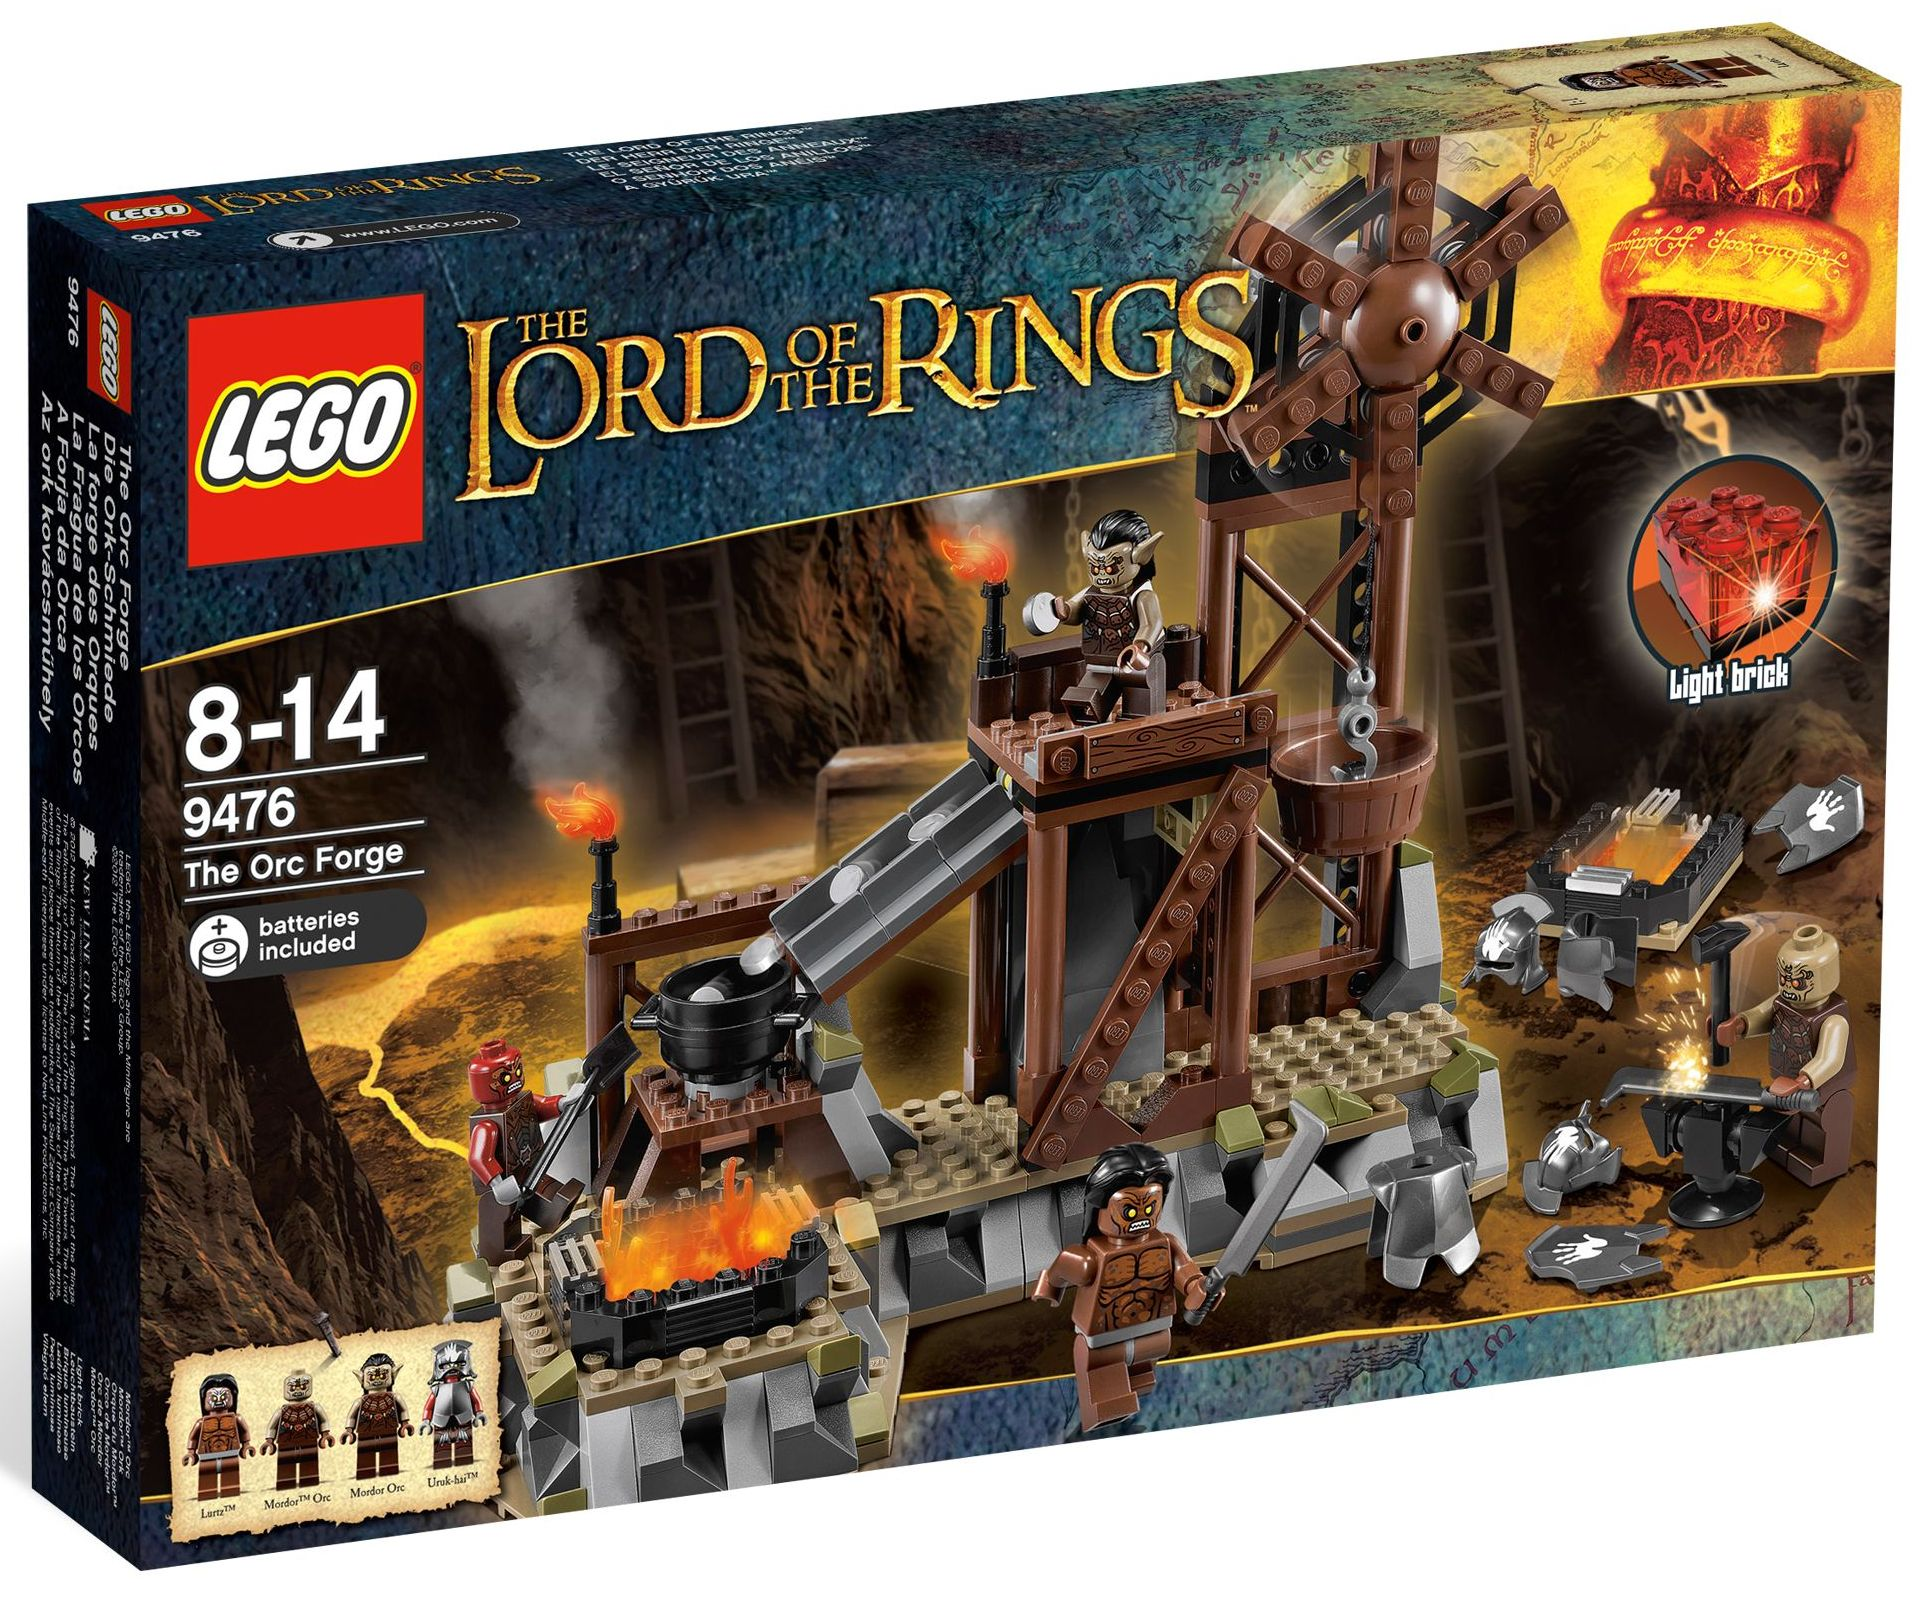 Lego 5001132 - The Lord of the Rings Collection   i Brick City